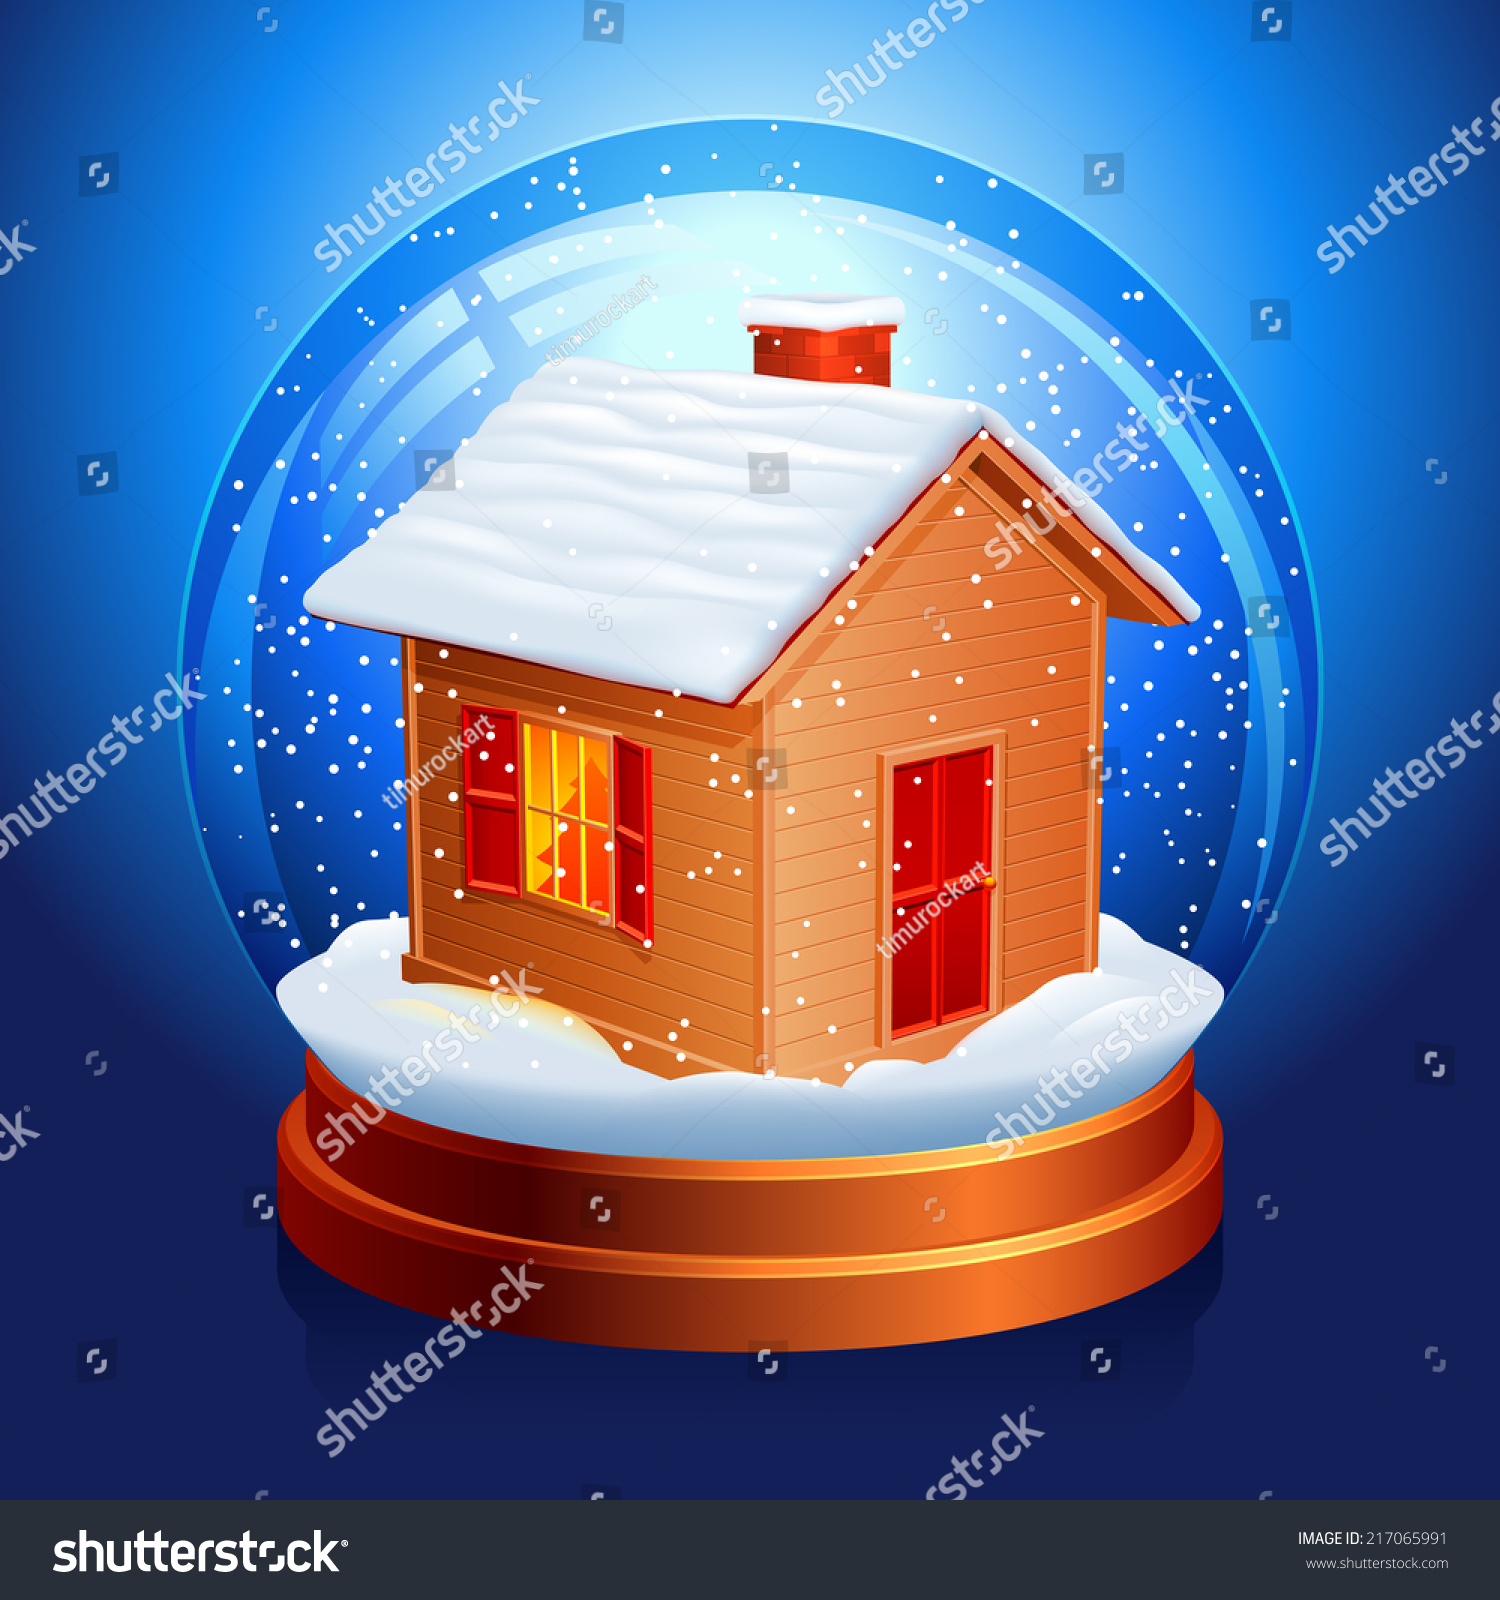 Snow globe with a little house inside